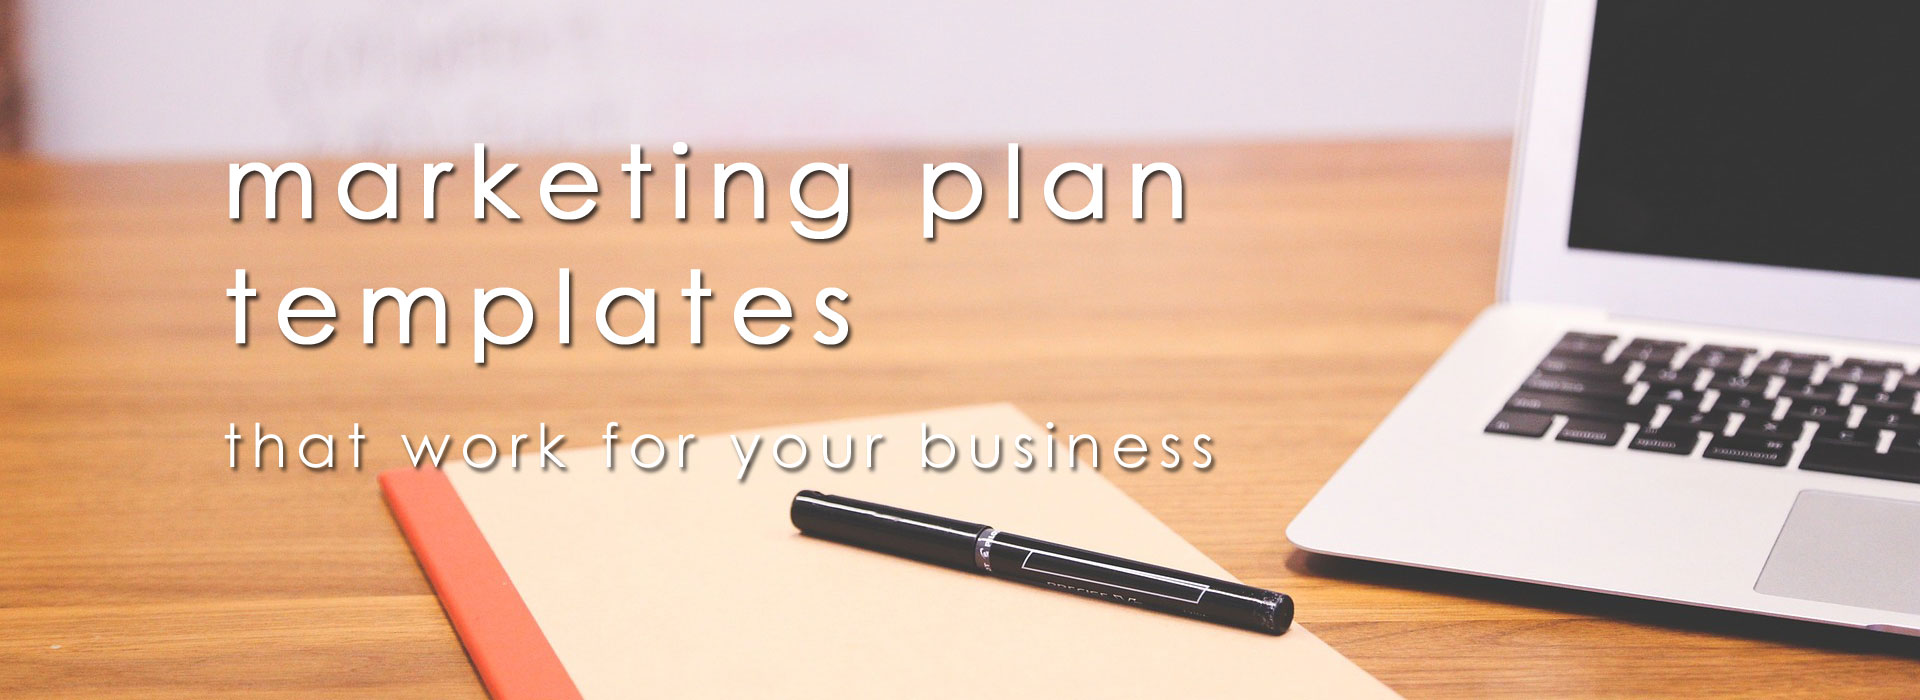 marketing plan templates